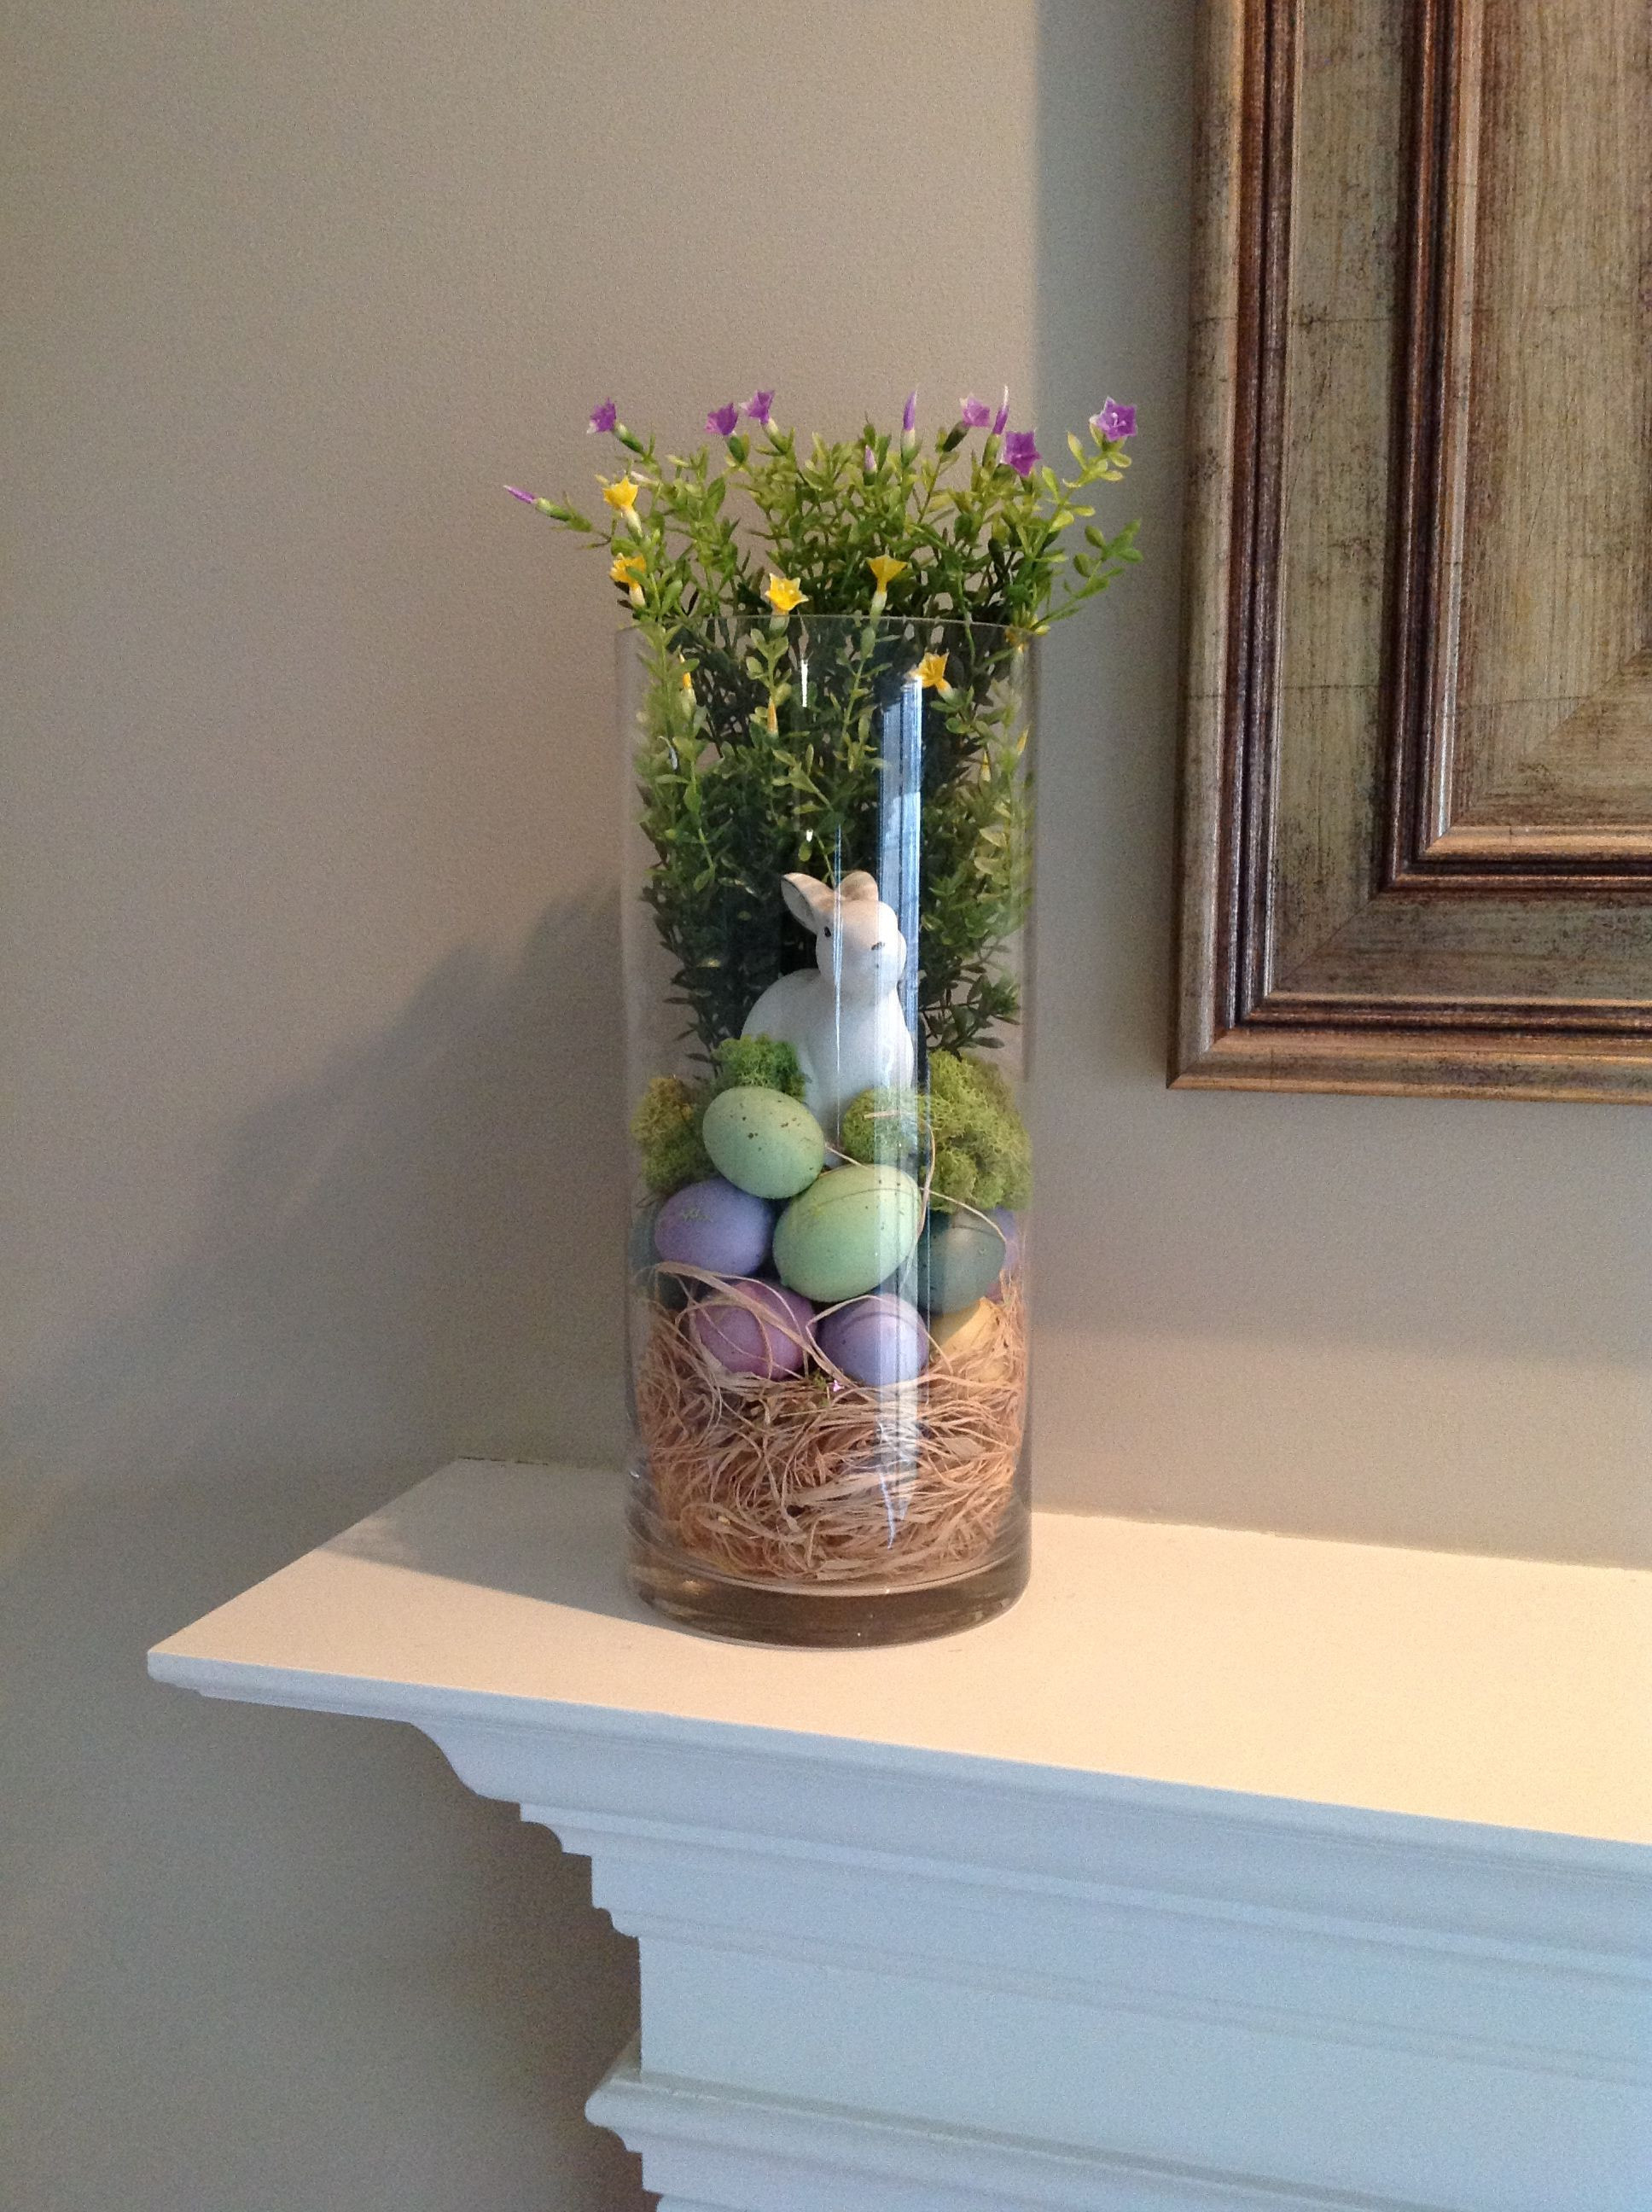 vase fillers sticks of tall vase fillers pictures tall vase centerpiece ideas vases flowers pertaining to tall vase fillers pictures hurricane glass vase filler for spring and easter on the mantel of